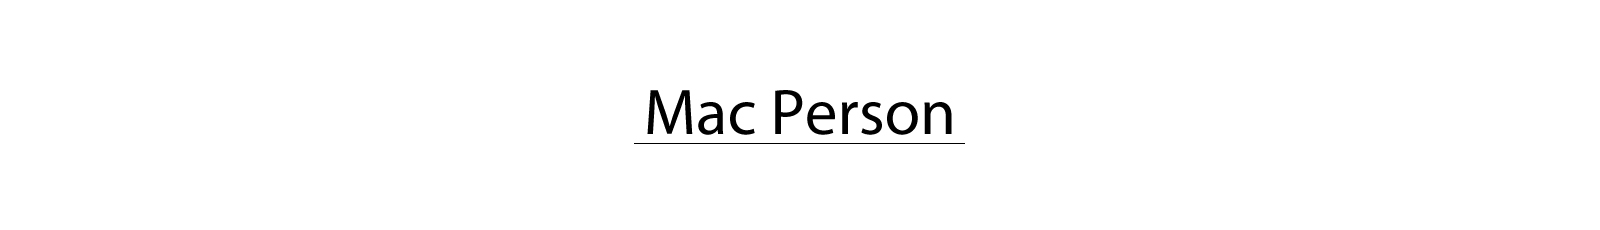 macperson3